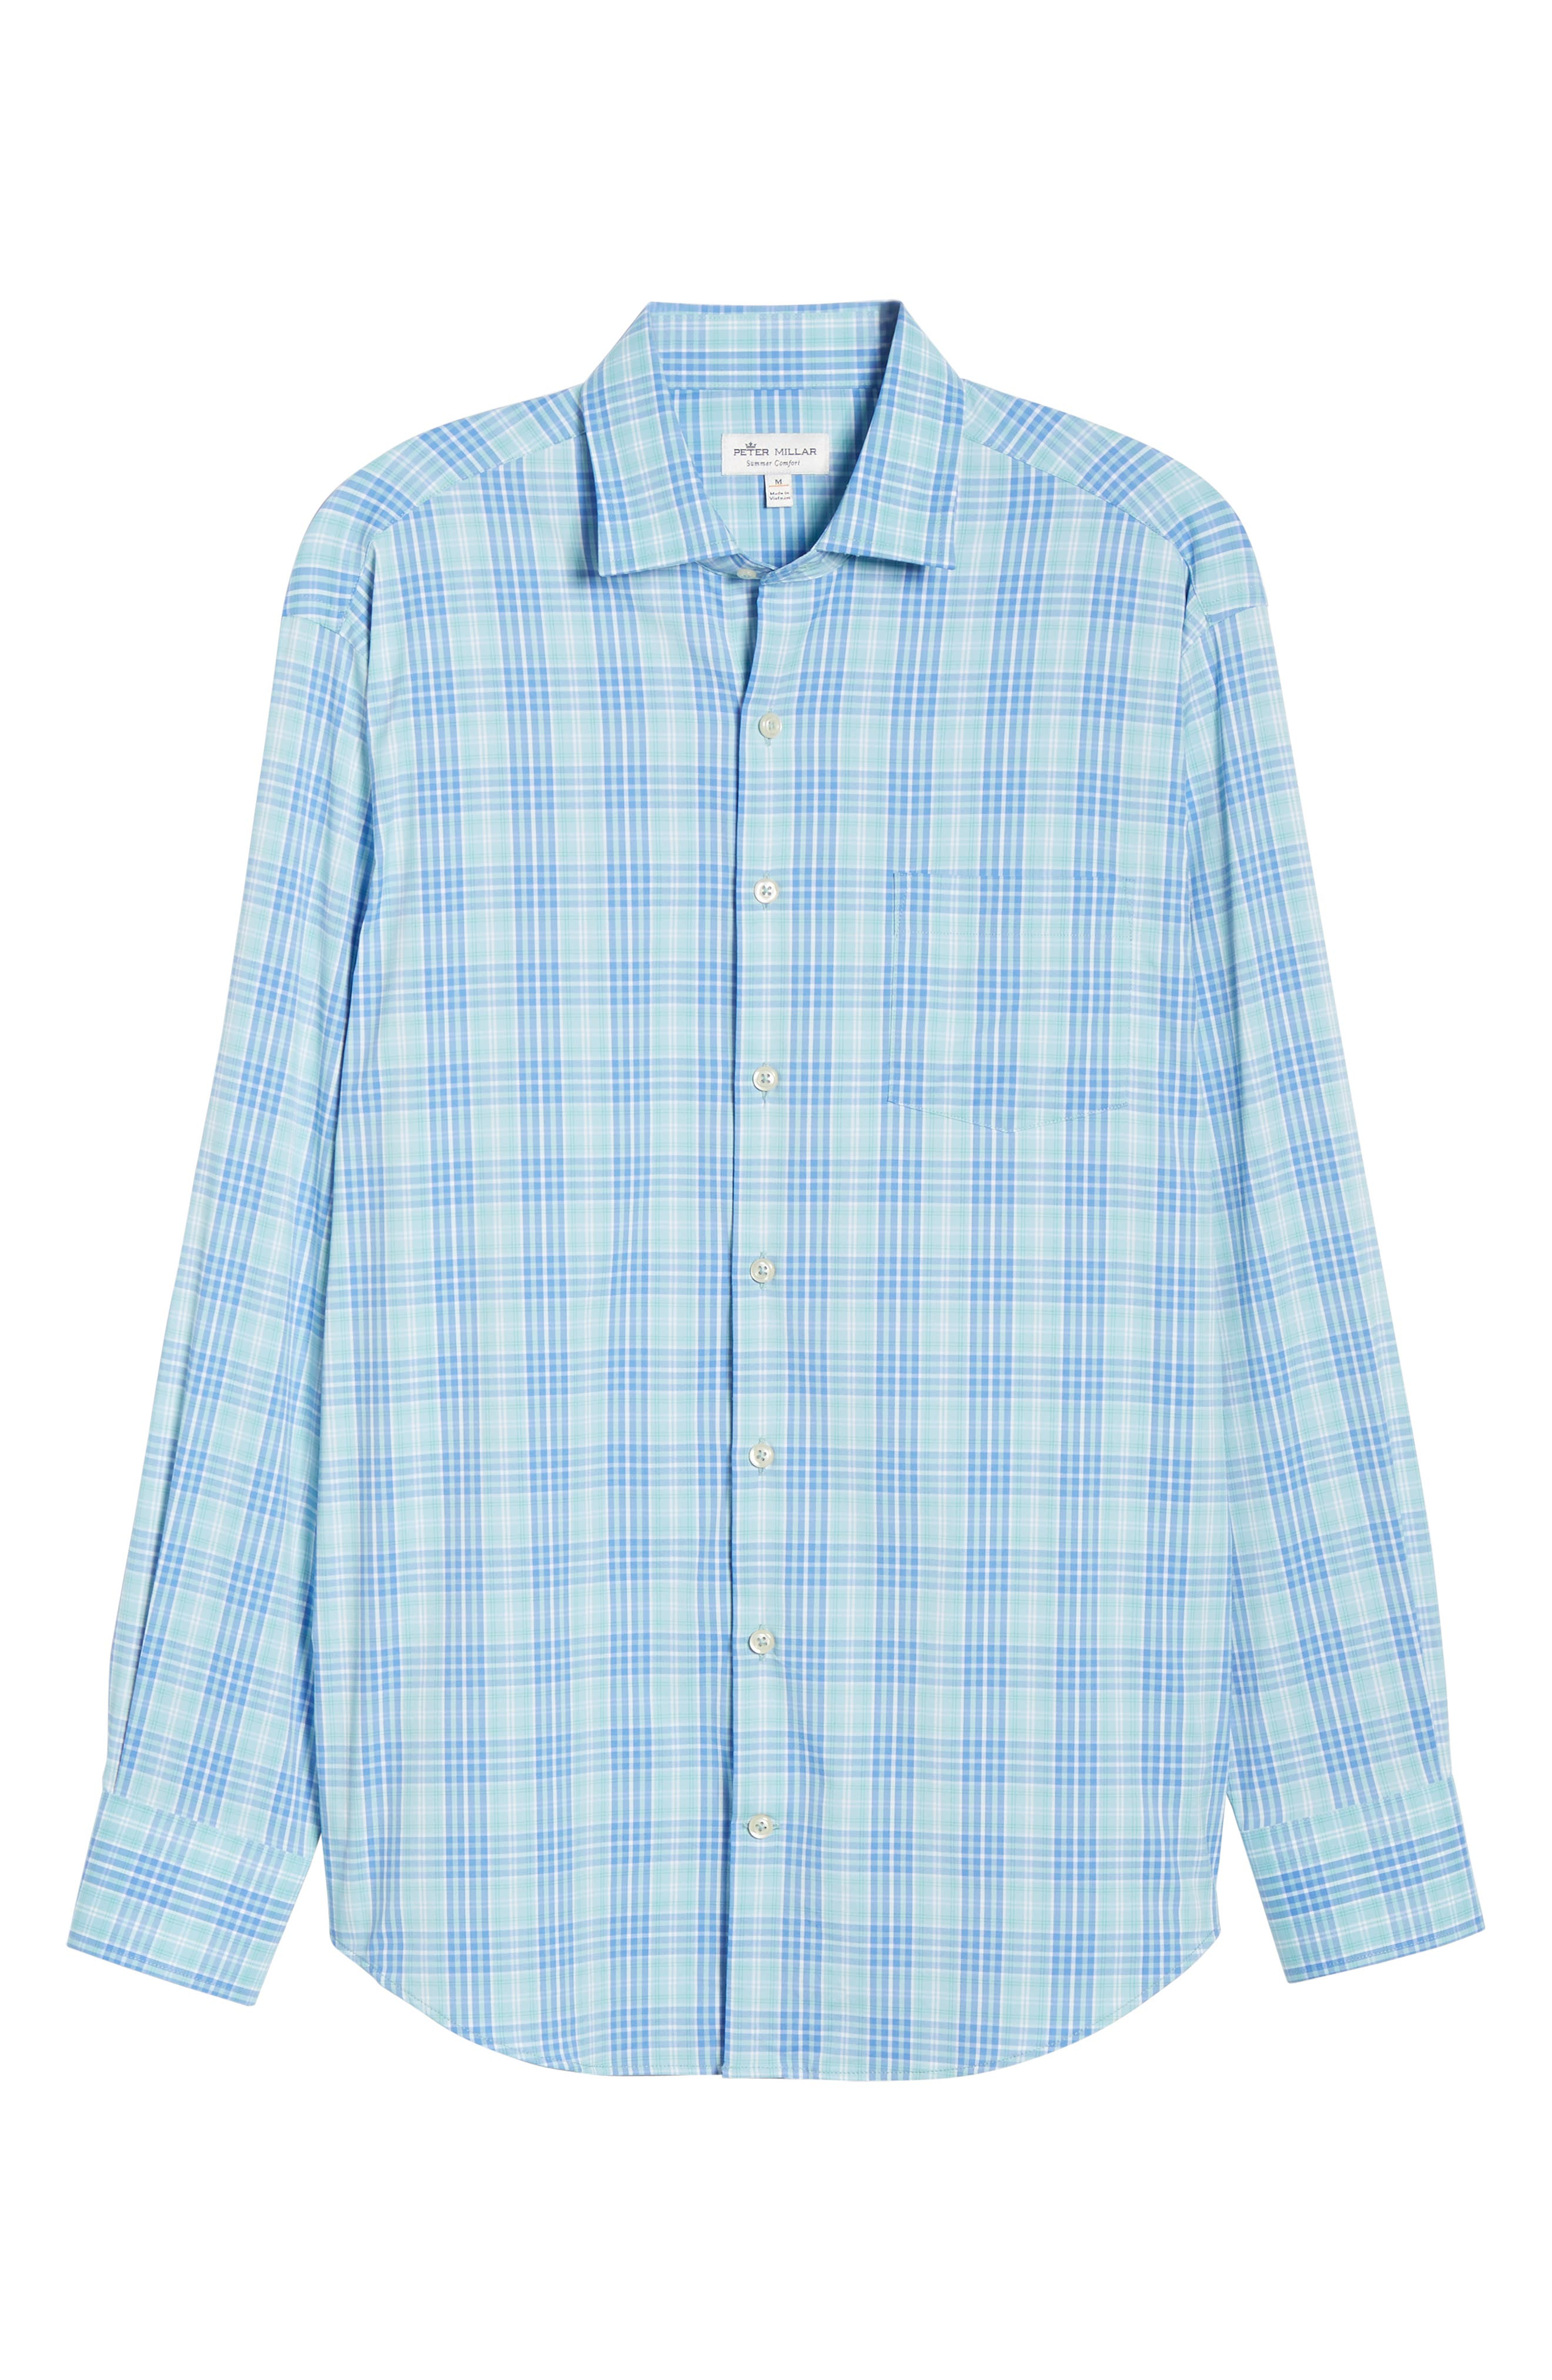 PETER MILLAR, Waterson Plaid Performance Sport Shirt, Alternate thumbnail 5, color, OASIS